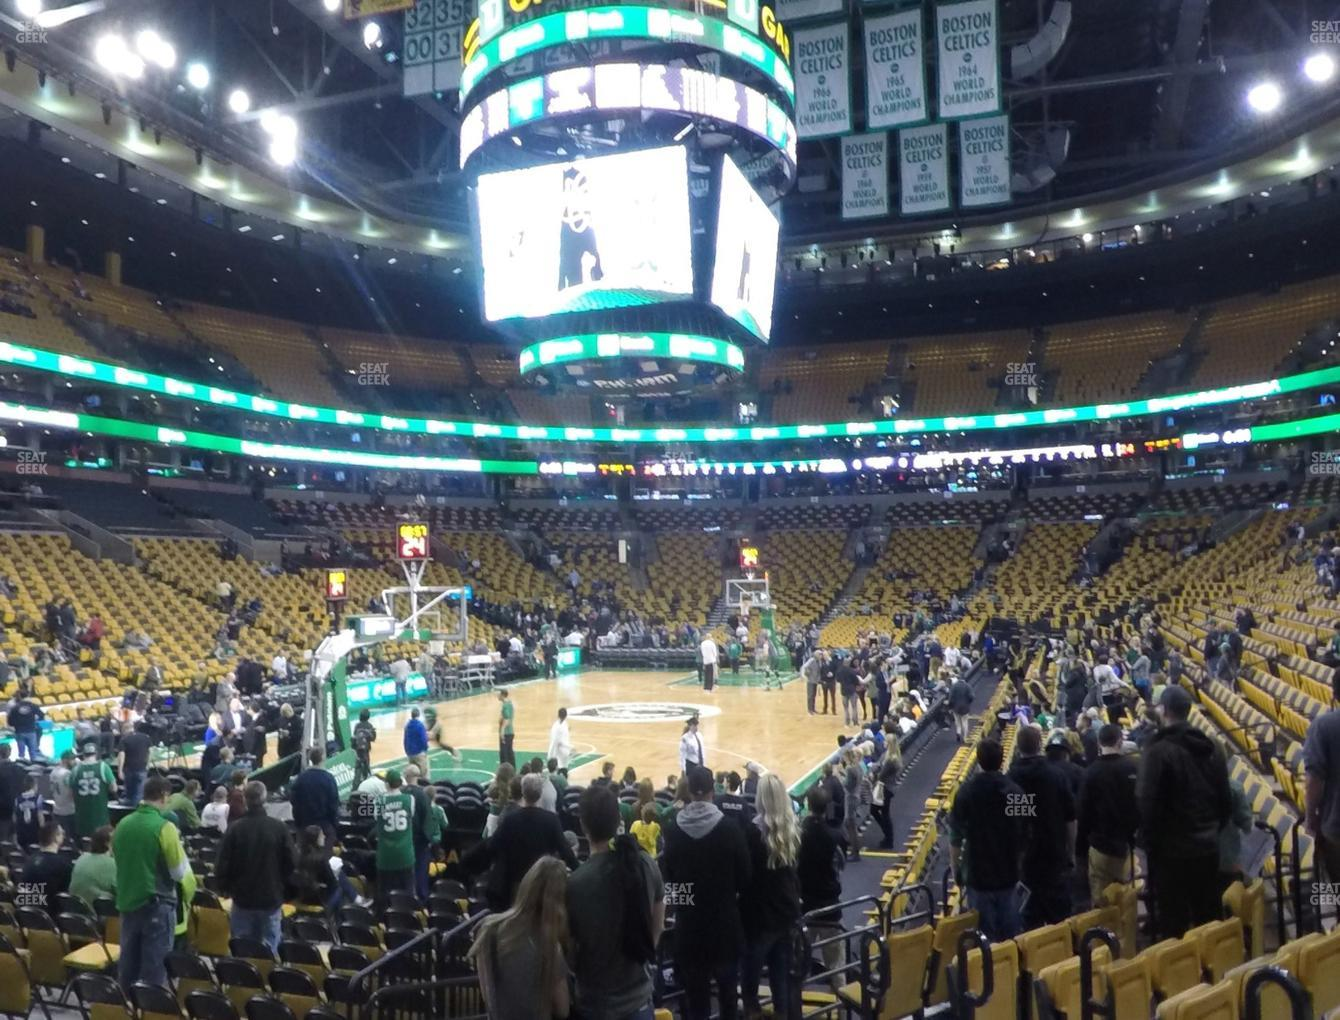 Boston Bruins at TD Garden Section Loge 16 View